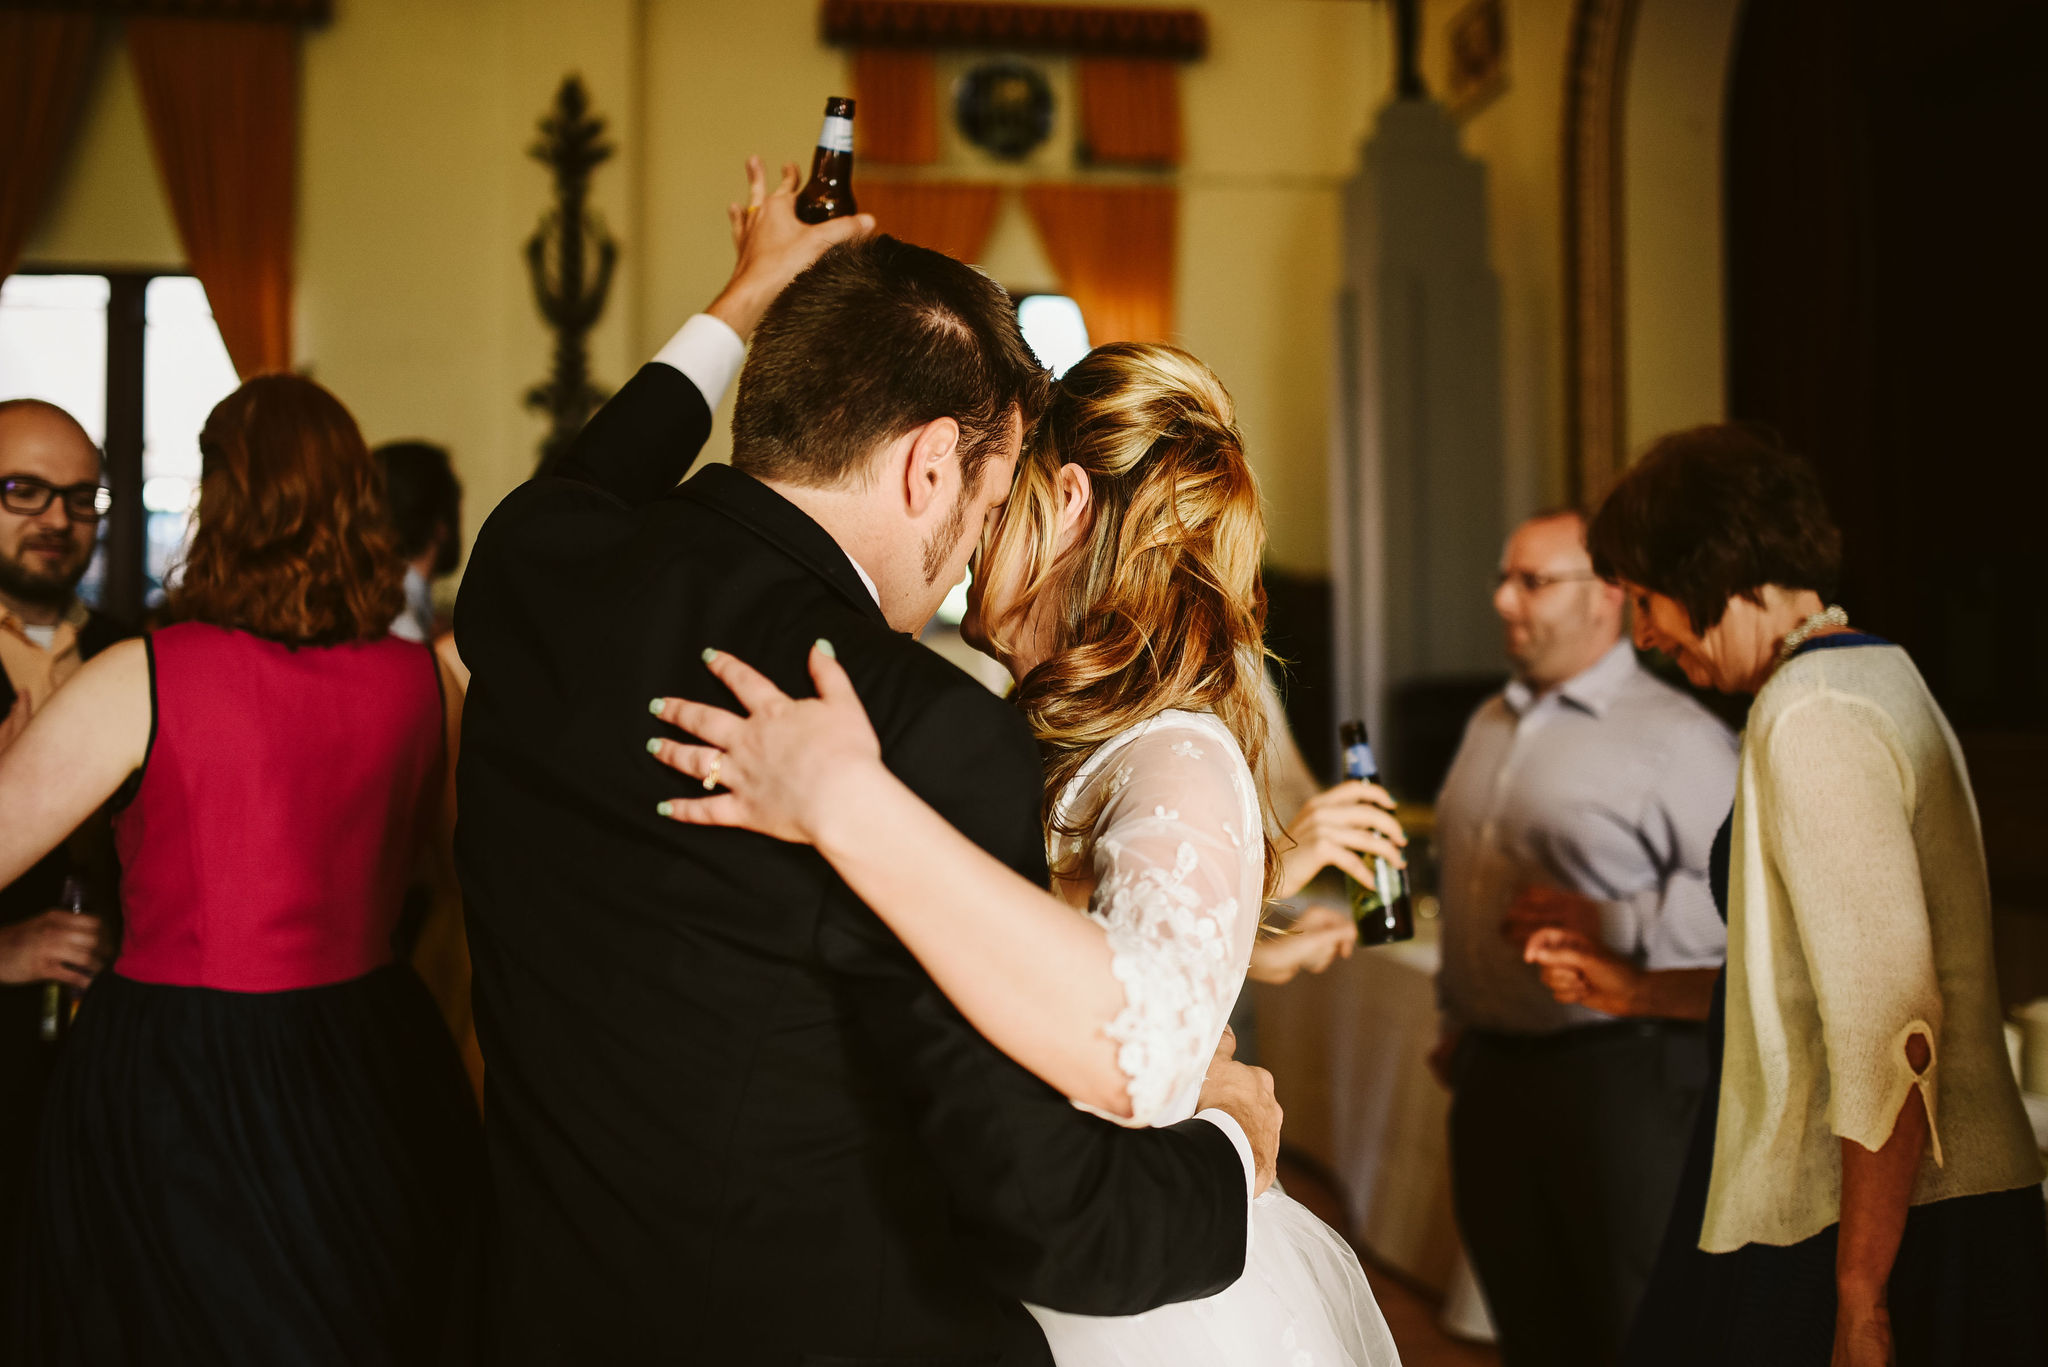 Baltimore, Lithuanian Dance Hall, Maryland Wedding Photographer, Vintage, Classic, 50s Style, Bride and Groom Dancing Cheek to Cheek, Candid Photo, Dancing at Wedding Reception